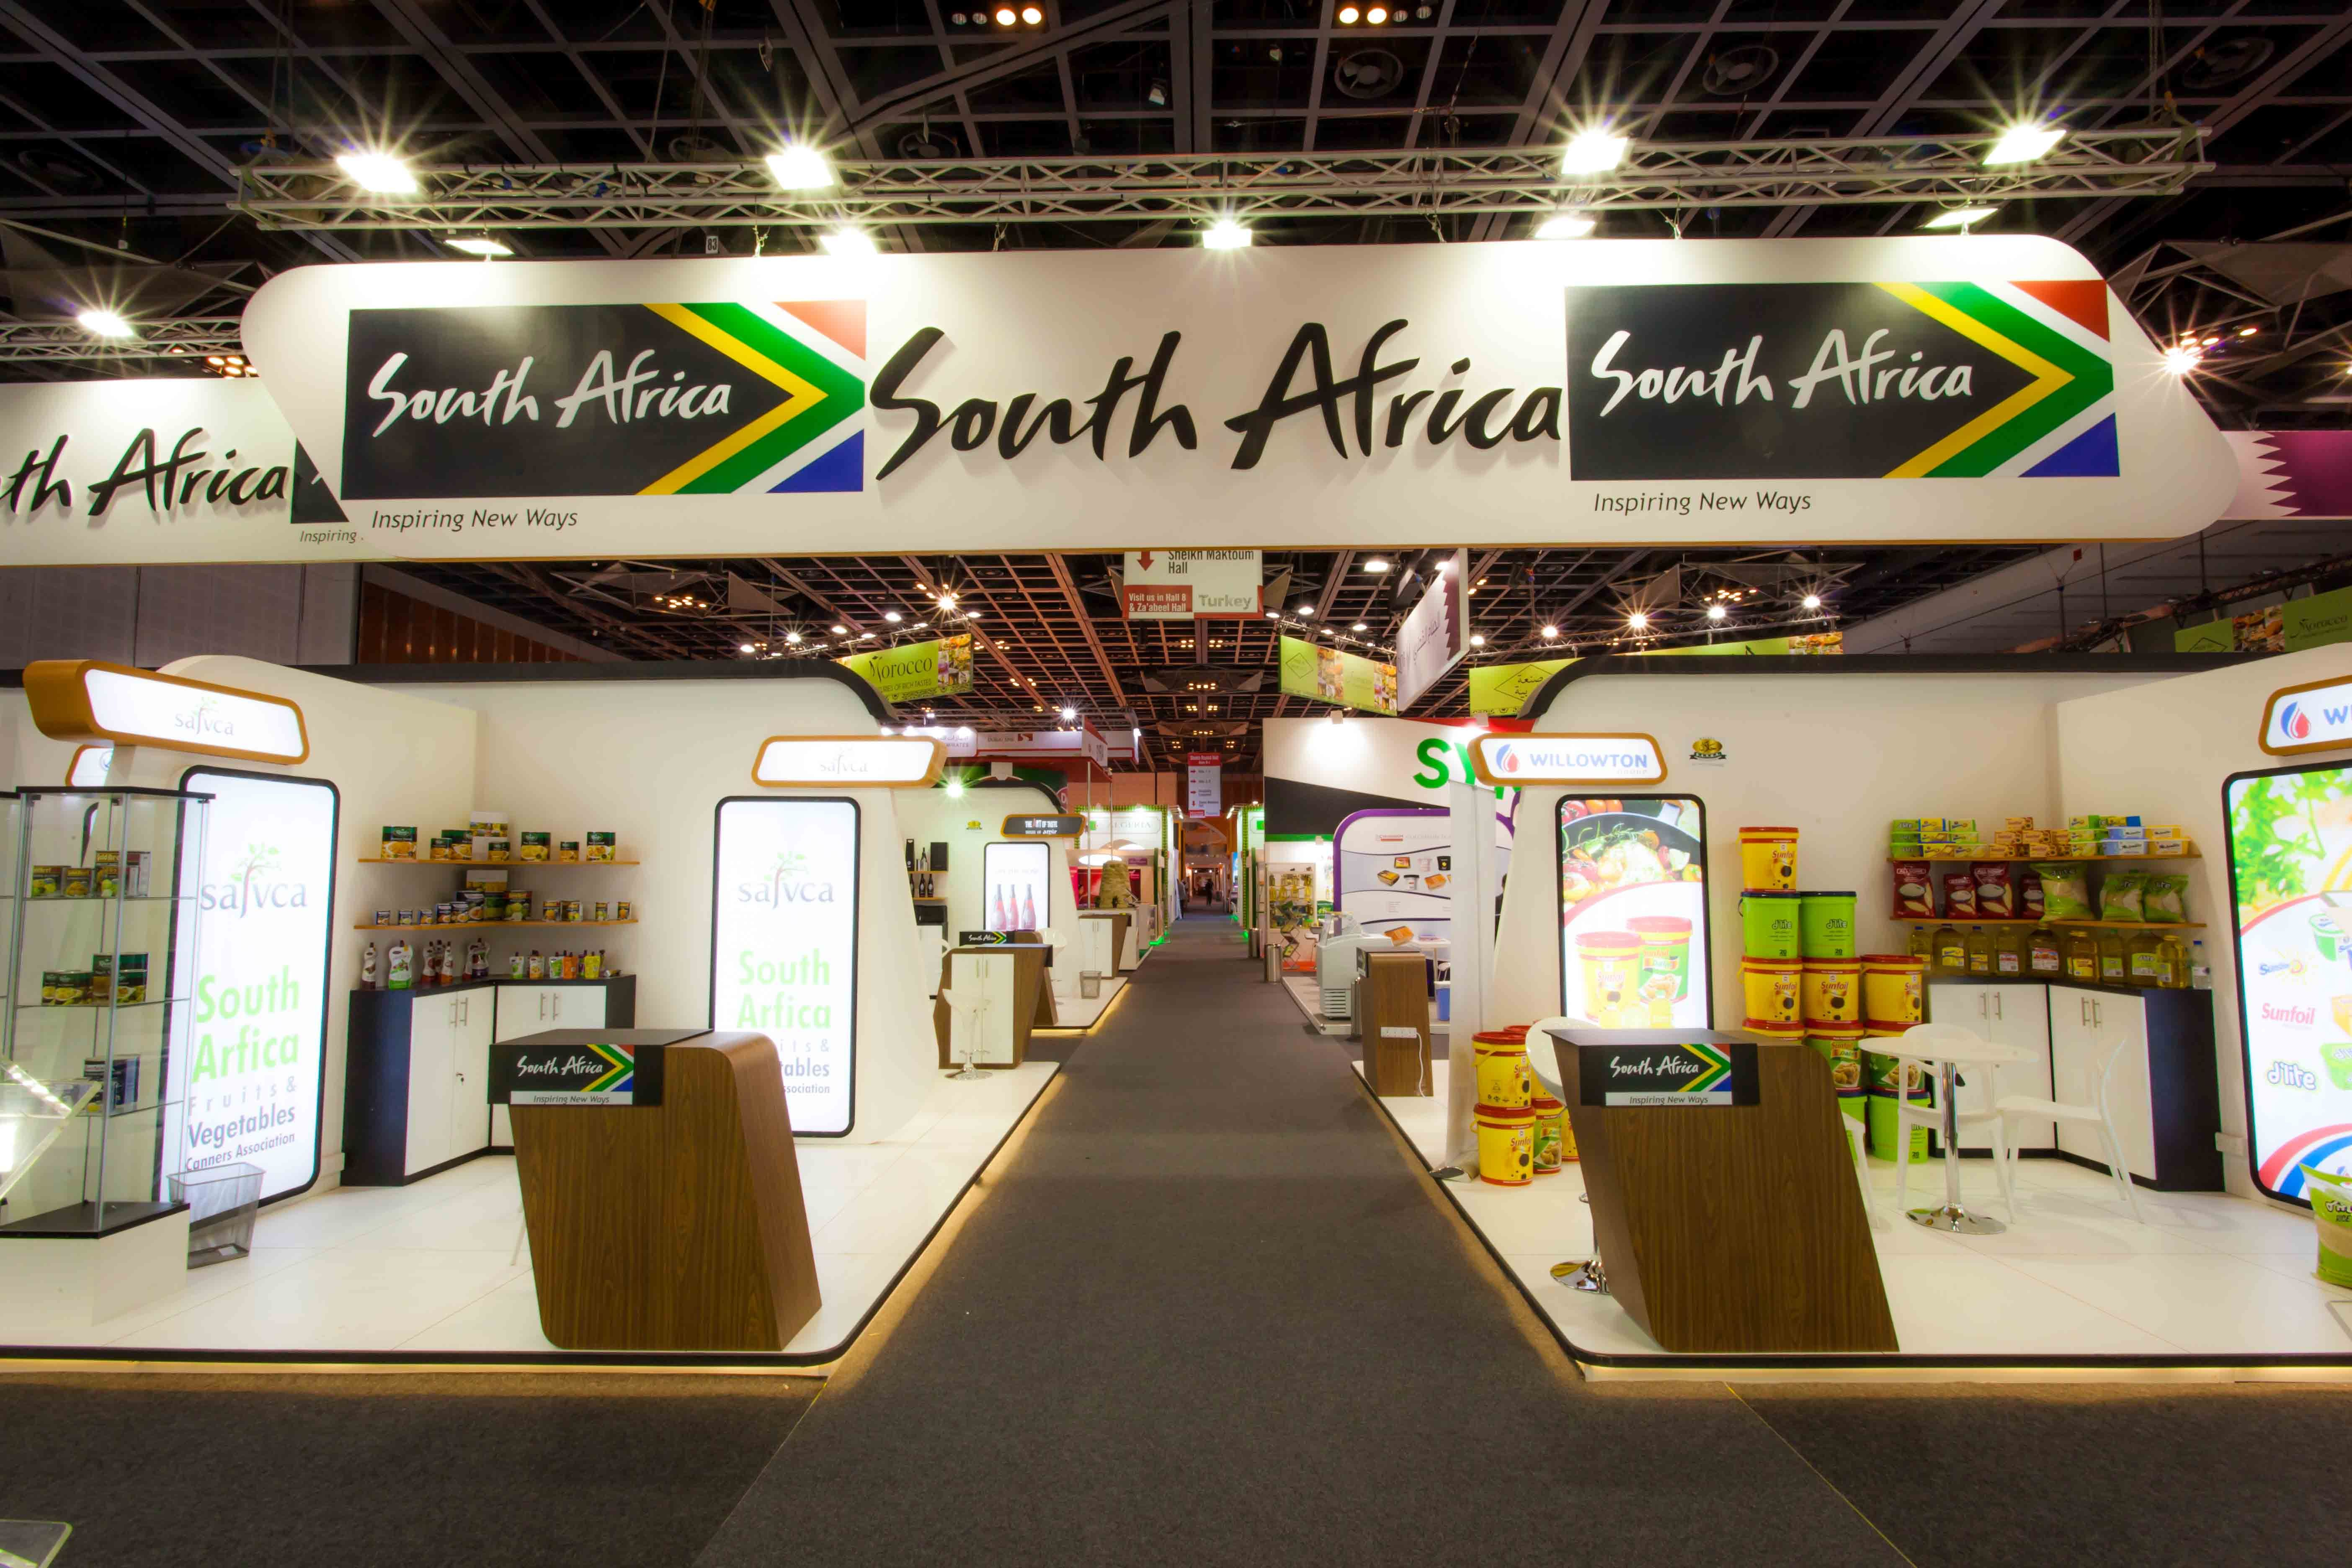 Southafrica Exhibition Stand Gulfood Dubai Uae Middleeast Designed Built By Gleventsmiddle Exhibition Booth Design Exhibition Booth Digital Signage